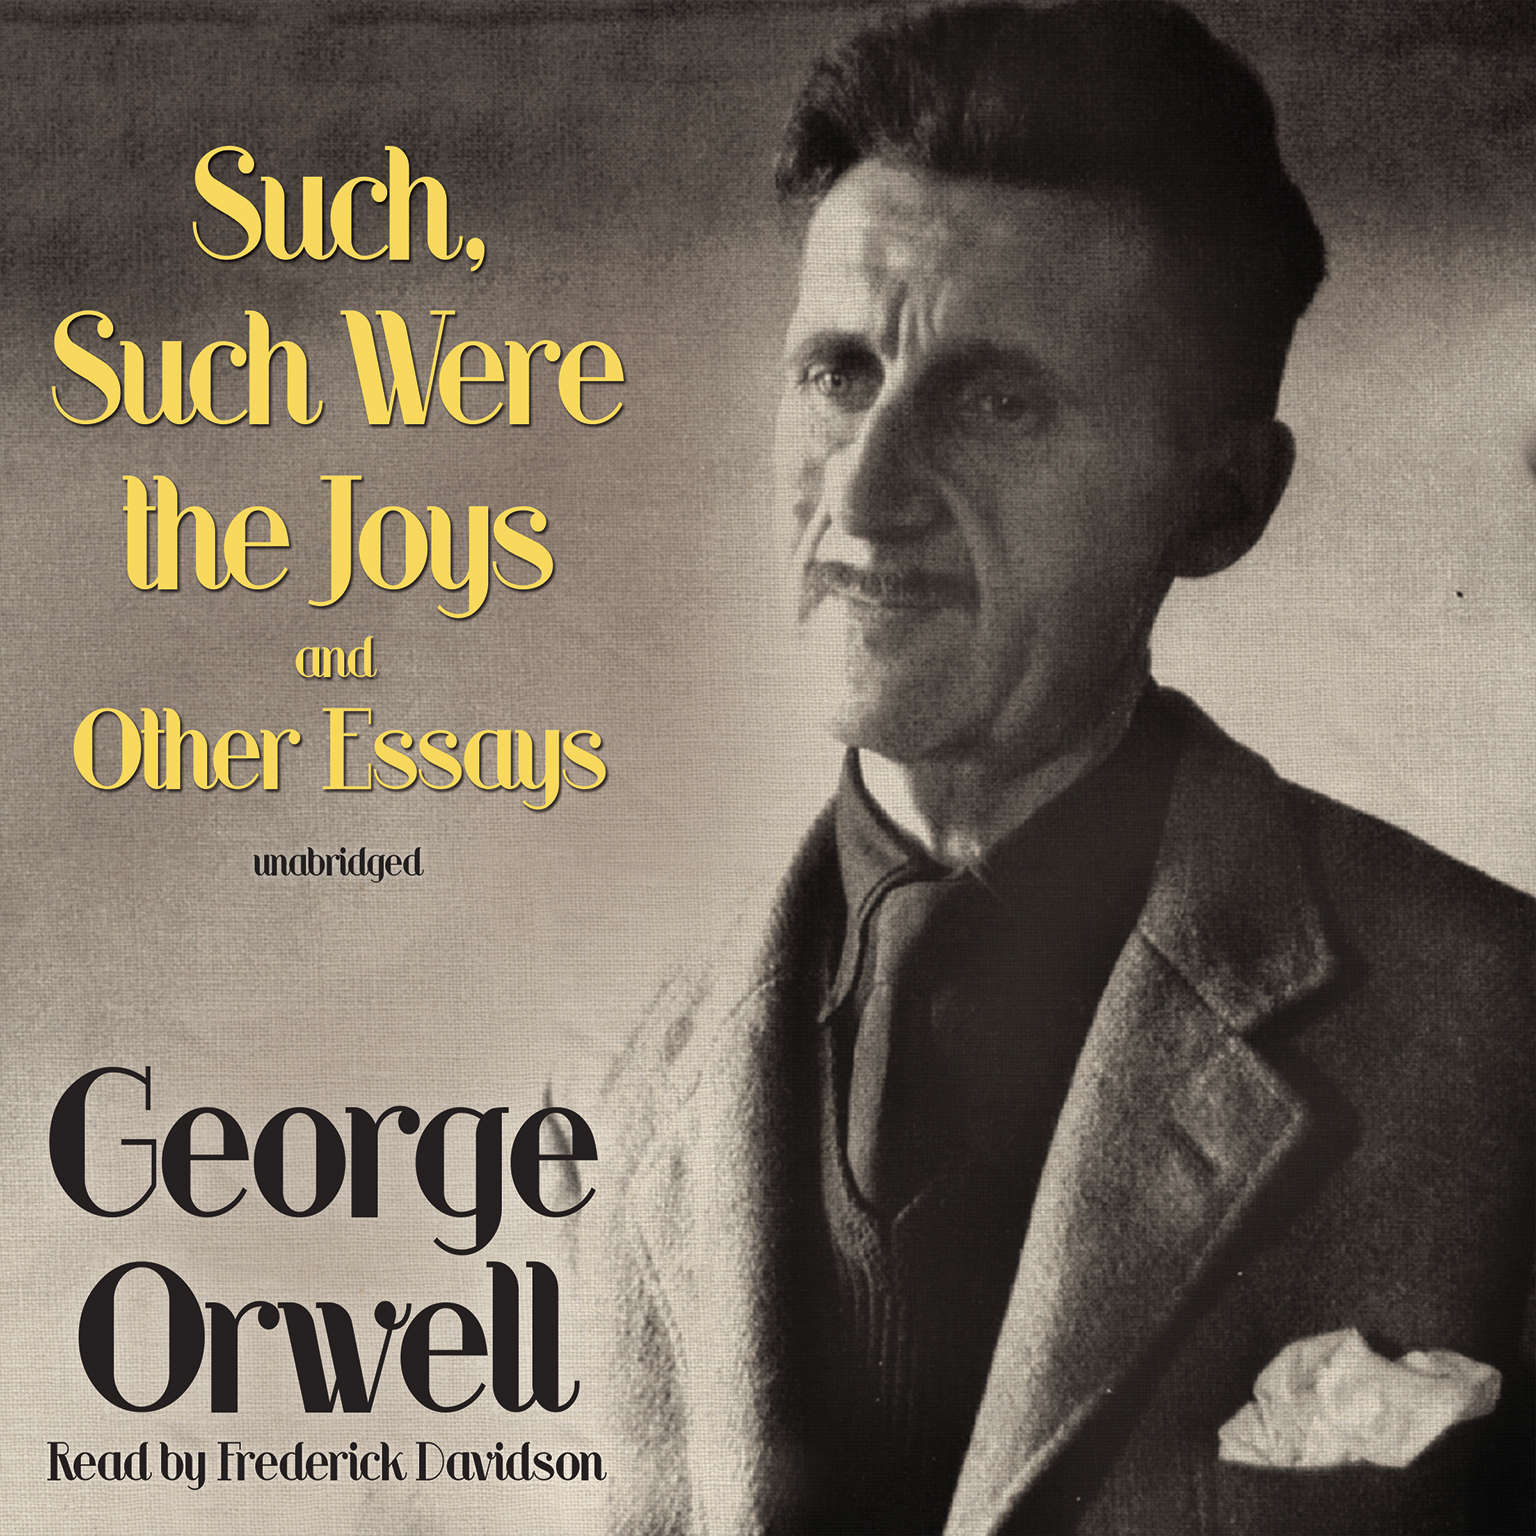 008 Square Essay Example George Orwell Frightening Essays 1984 Summary Collected Pdf On Writing Full